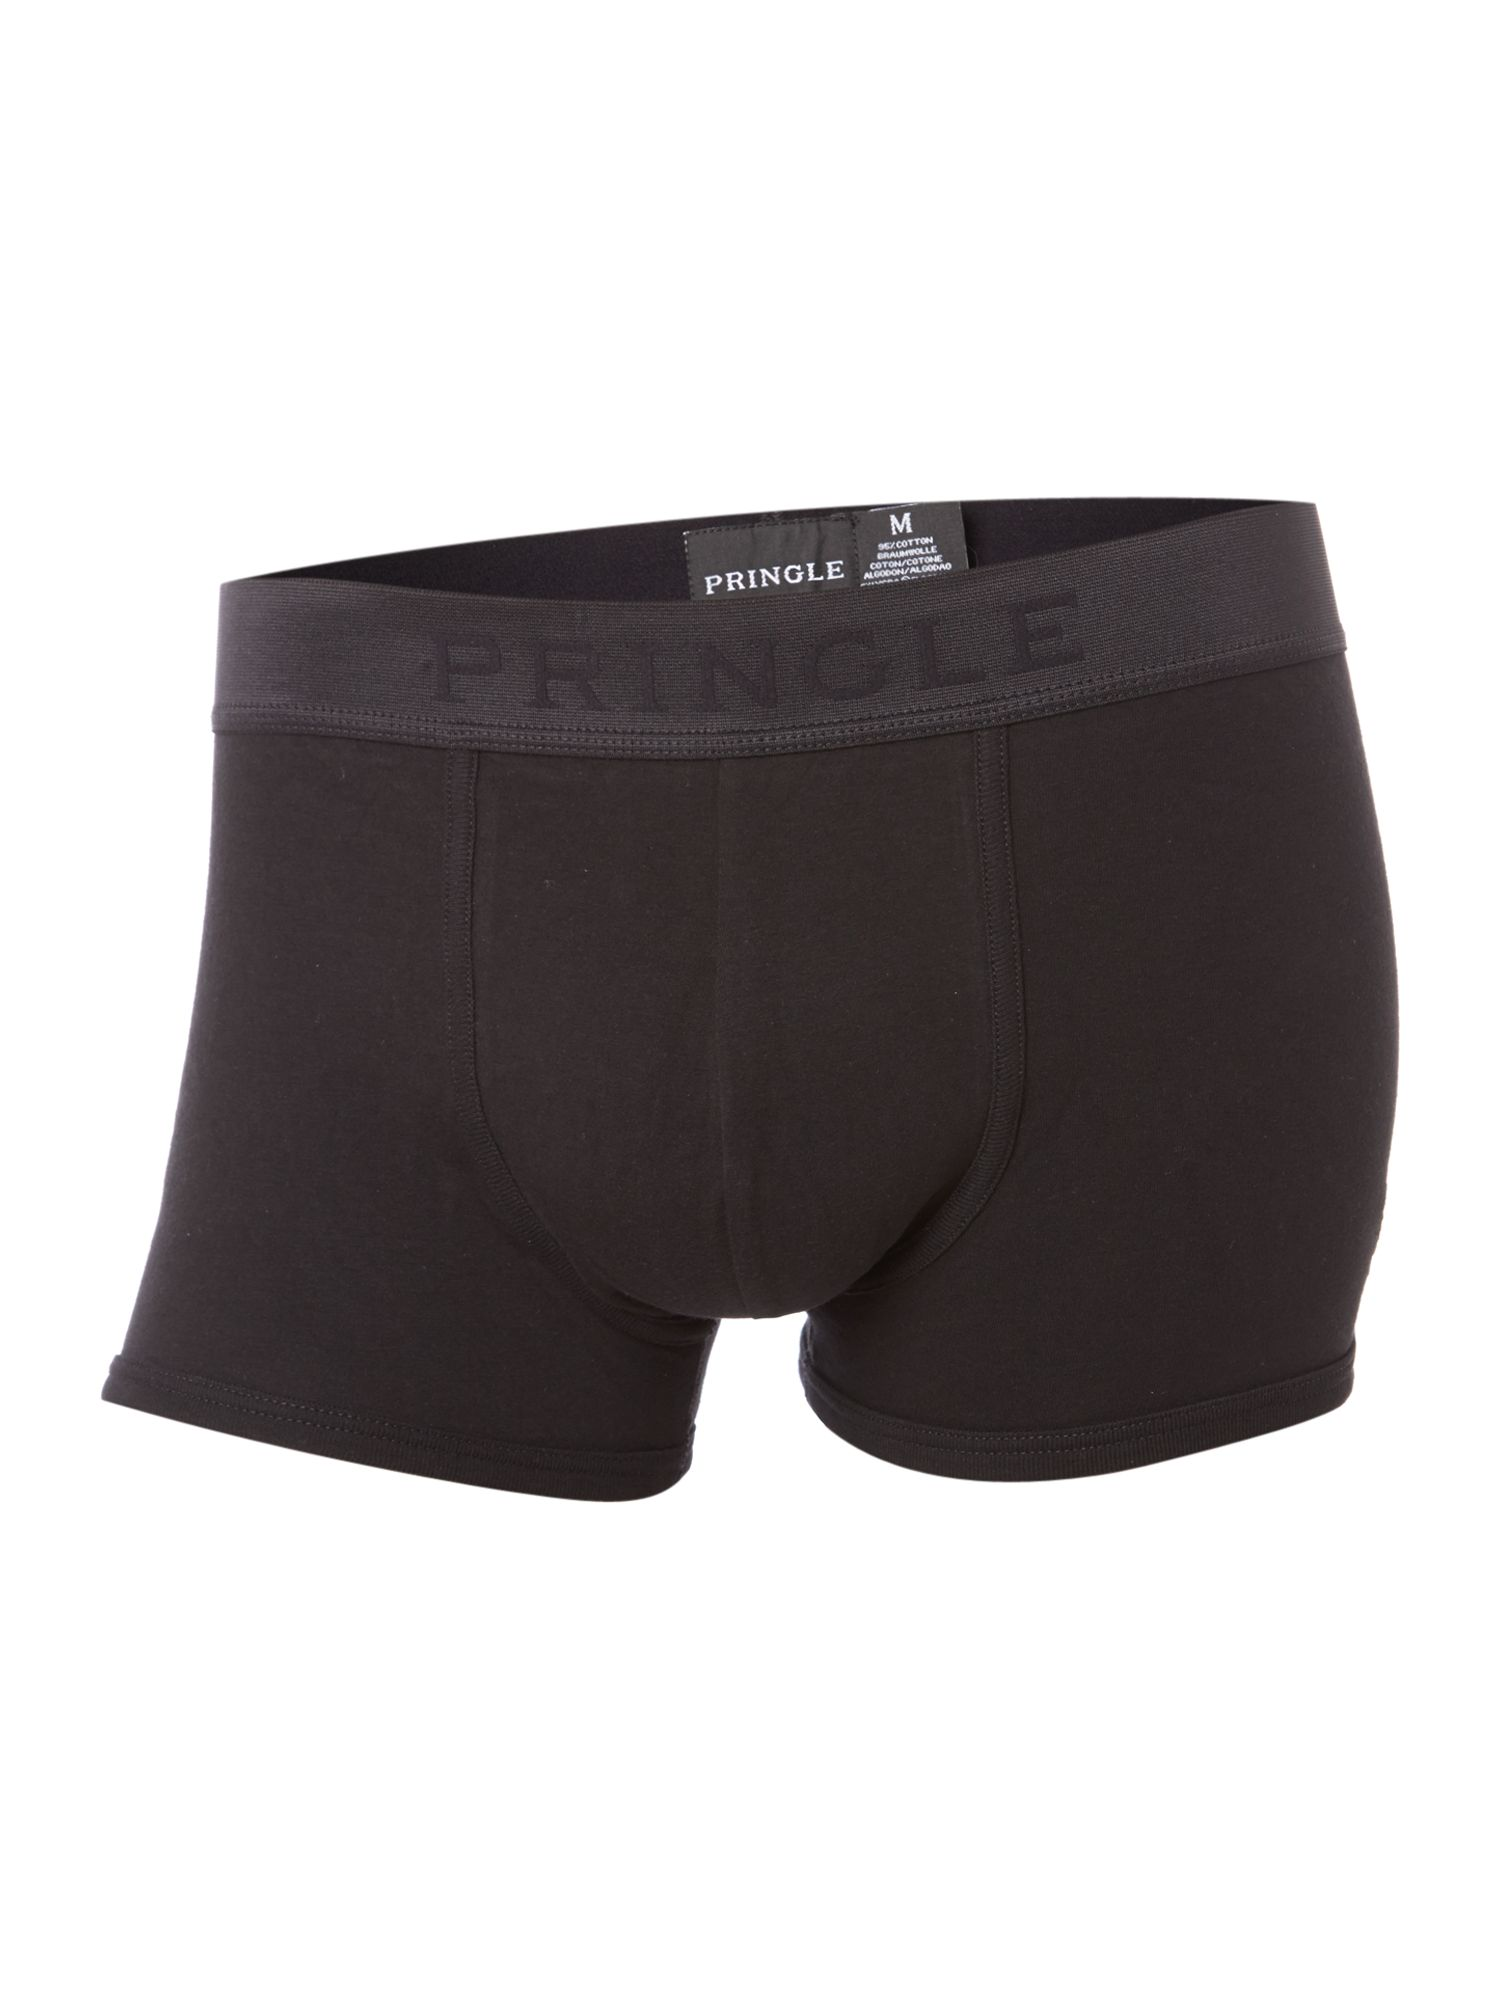 3 pack black trunks